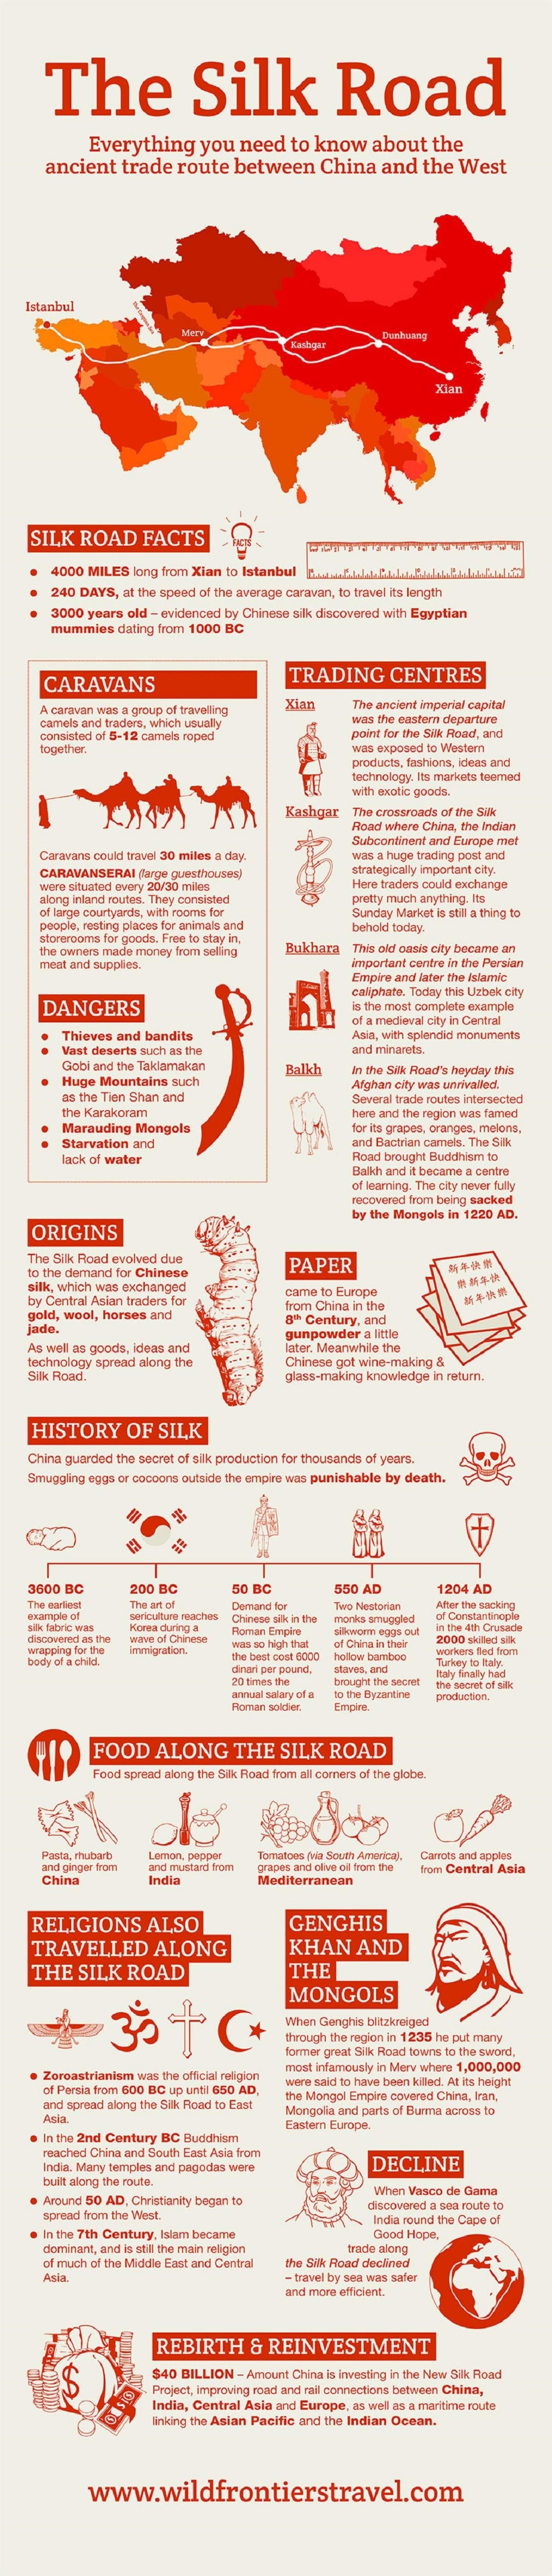 silk-road-infographic